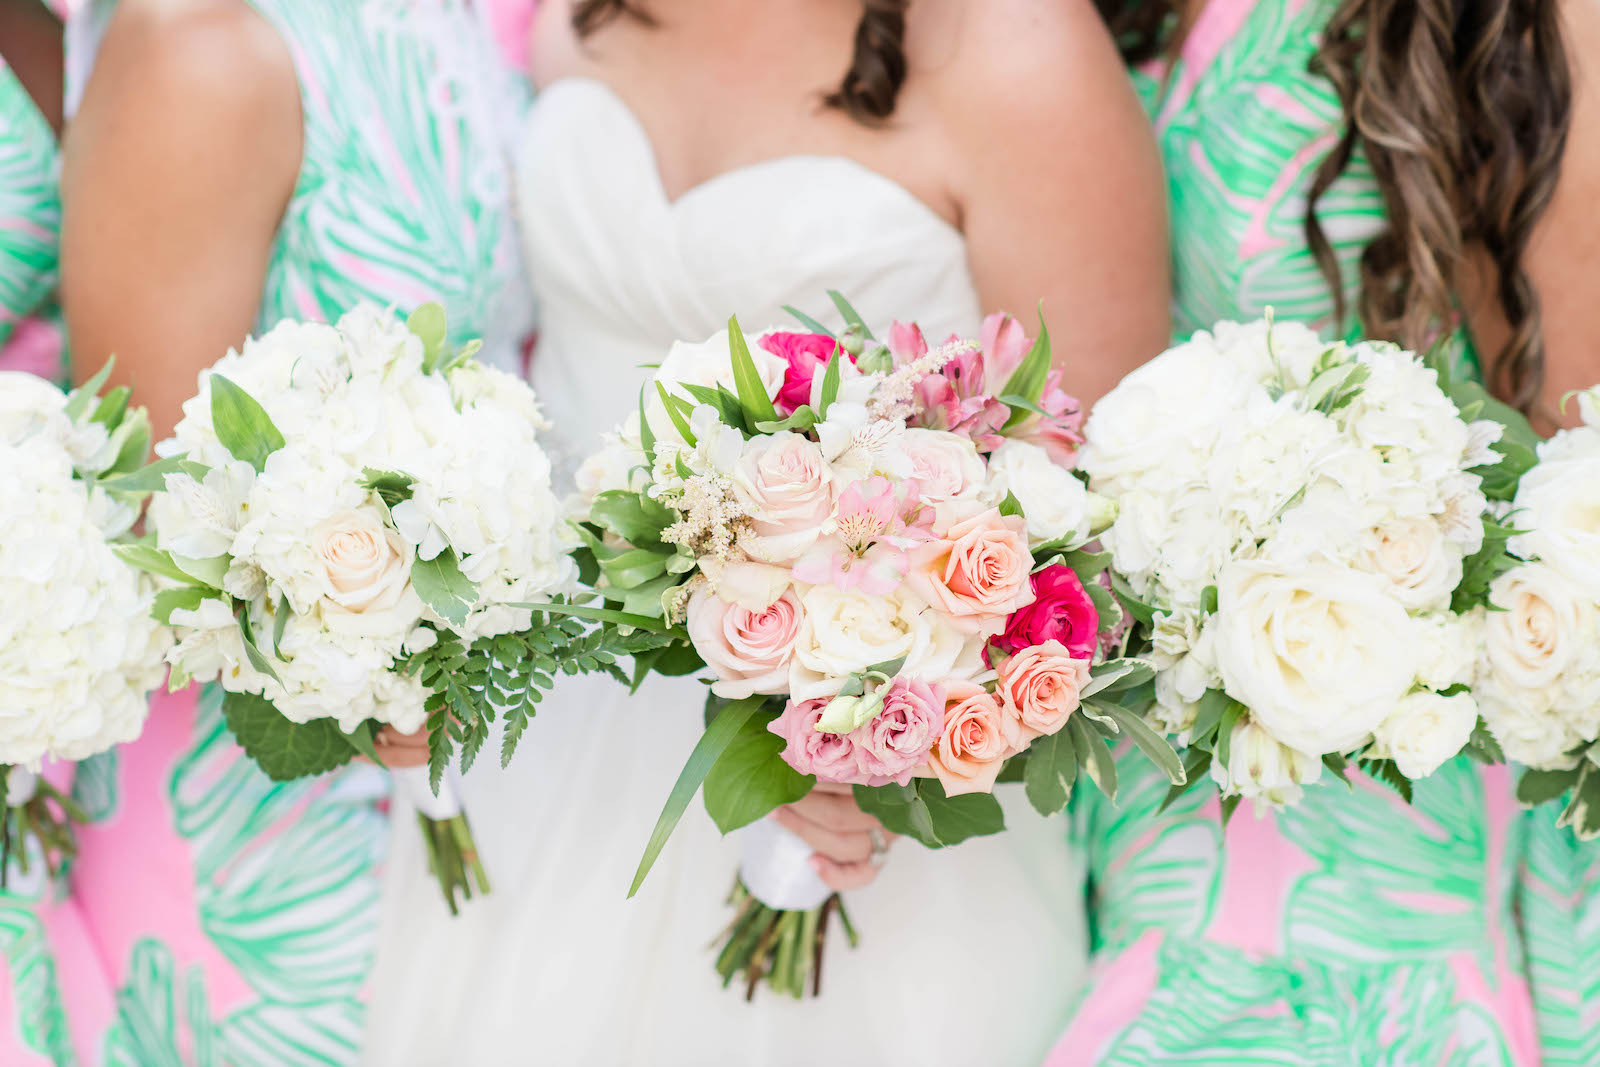 Tropical Bride and Bridesmaids Holding White Hydrangeas, Pink and Blush Roses Floral Bouquets